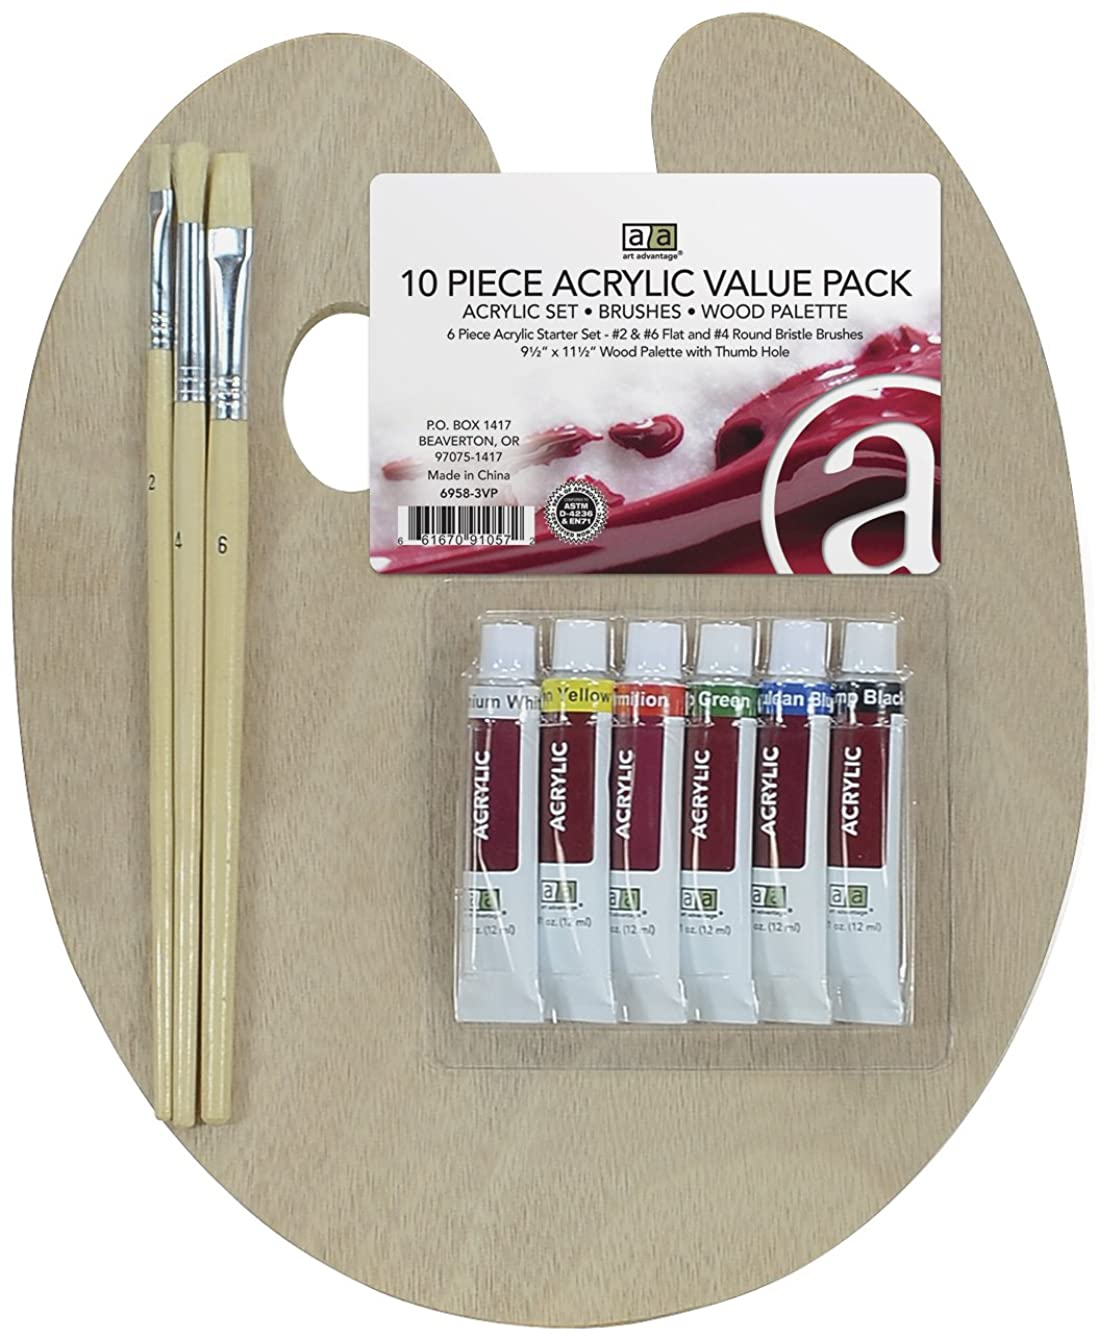 Art Advantage Wood Palette with Paint Set and Brushes, 9.5 by 11.5-Inch, Acrylic